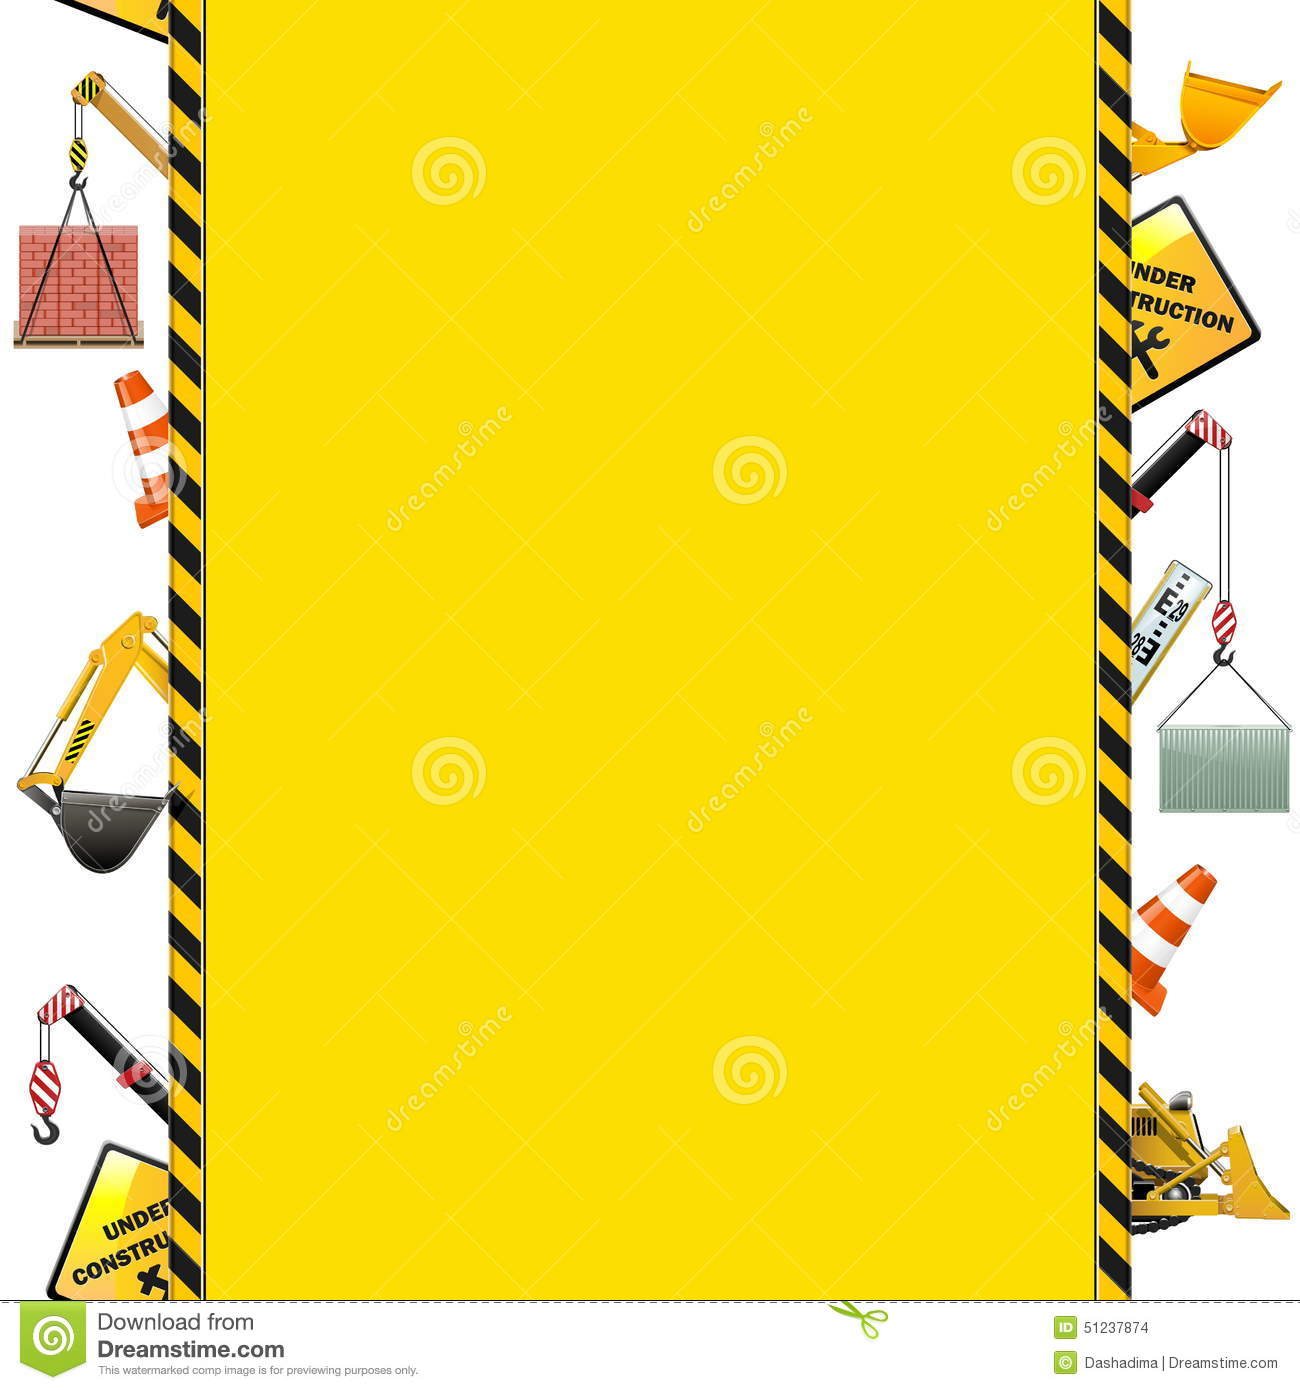 Vector Construction Frame With Machinery Stock Vector